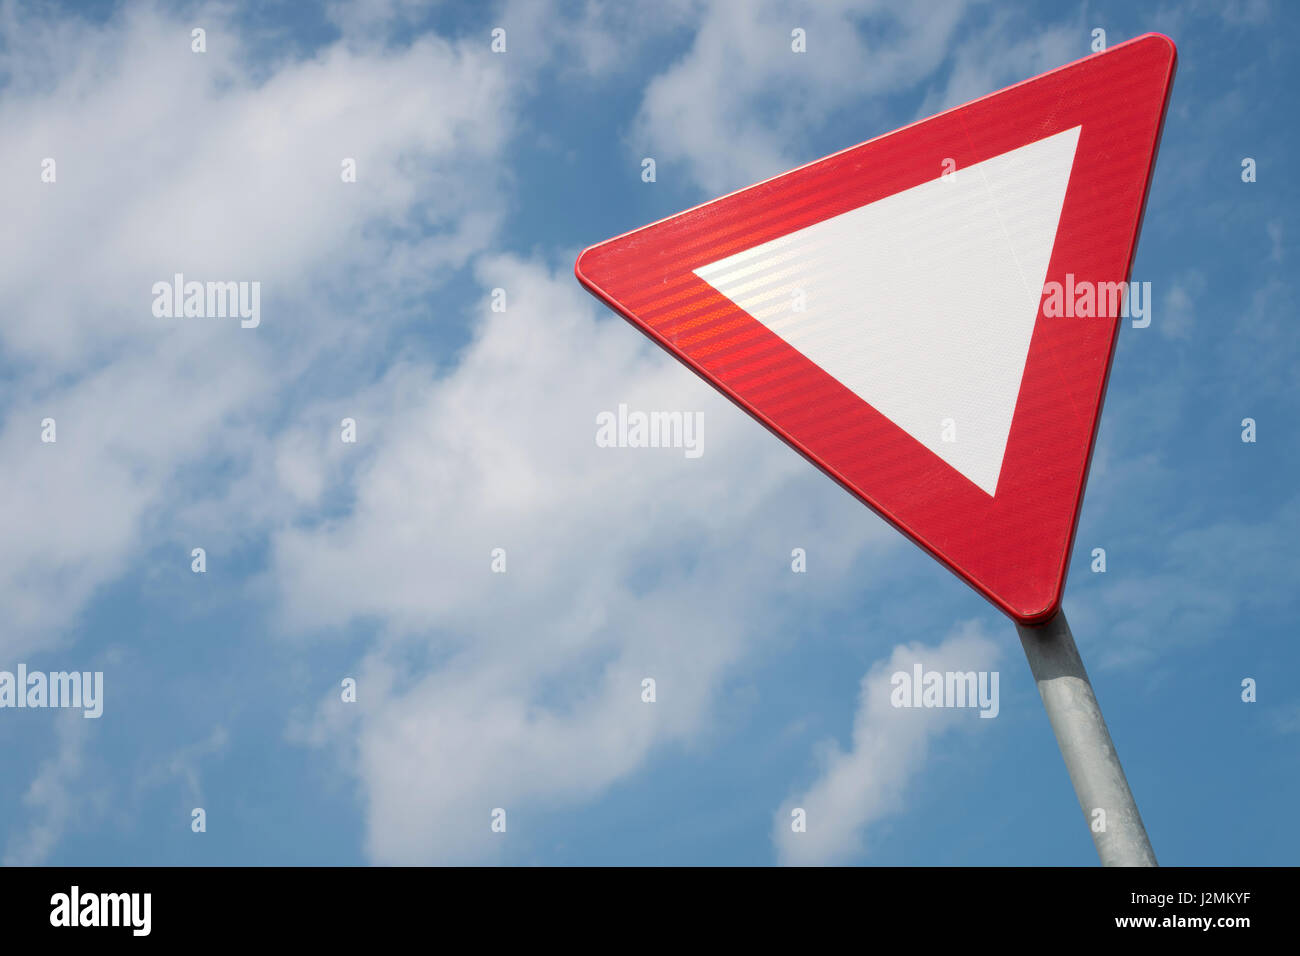 Dutch road sign: give priority to traffic on the main road ahead - Stock Image